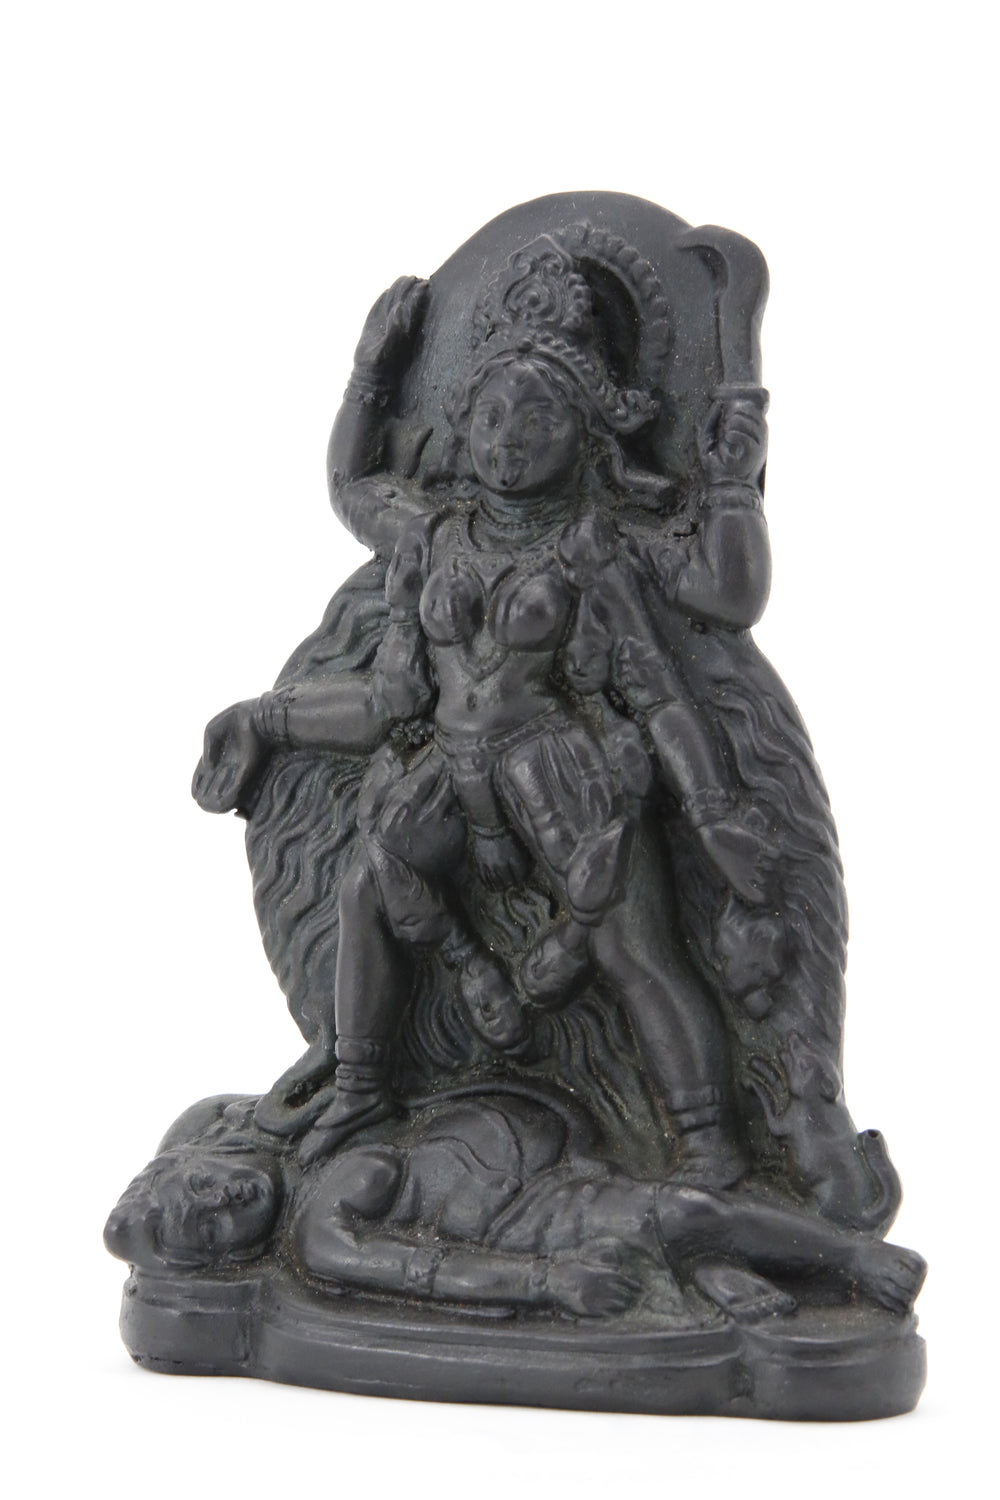 GODDESS KALI STANDING STATUE DARK SIDE VIEW